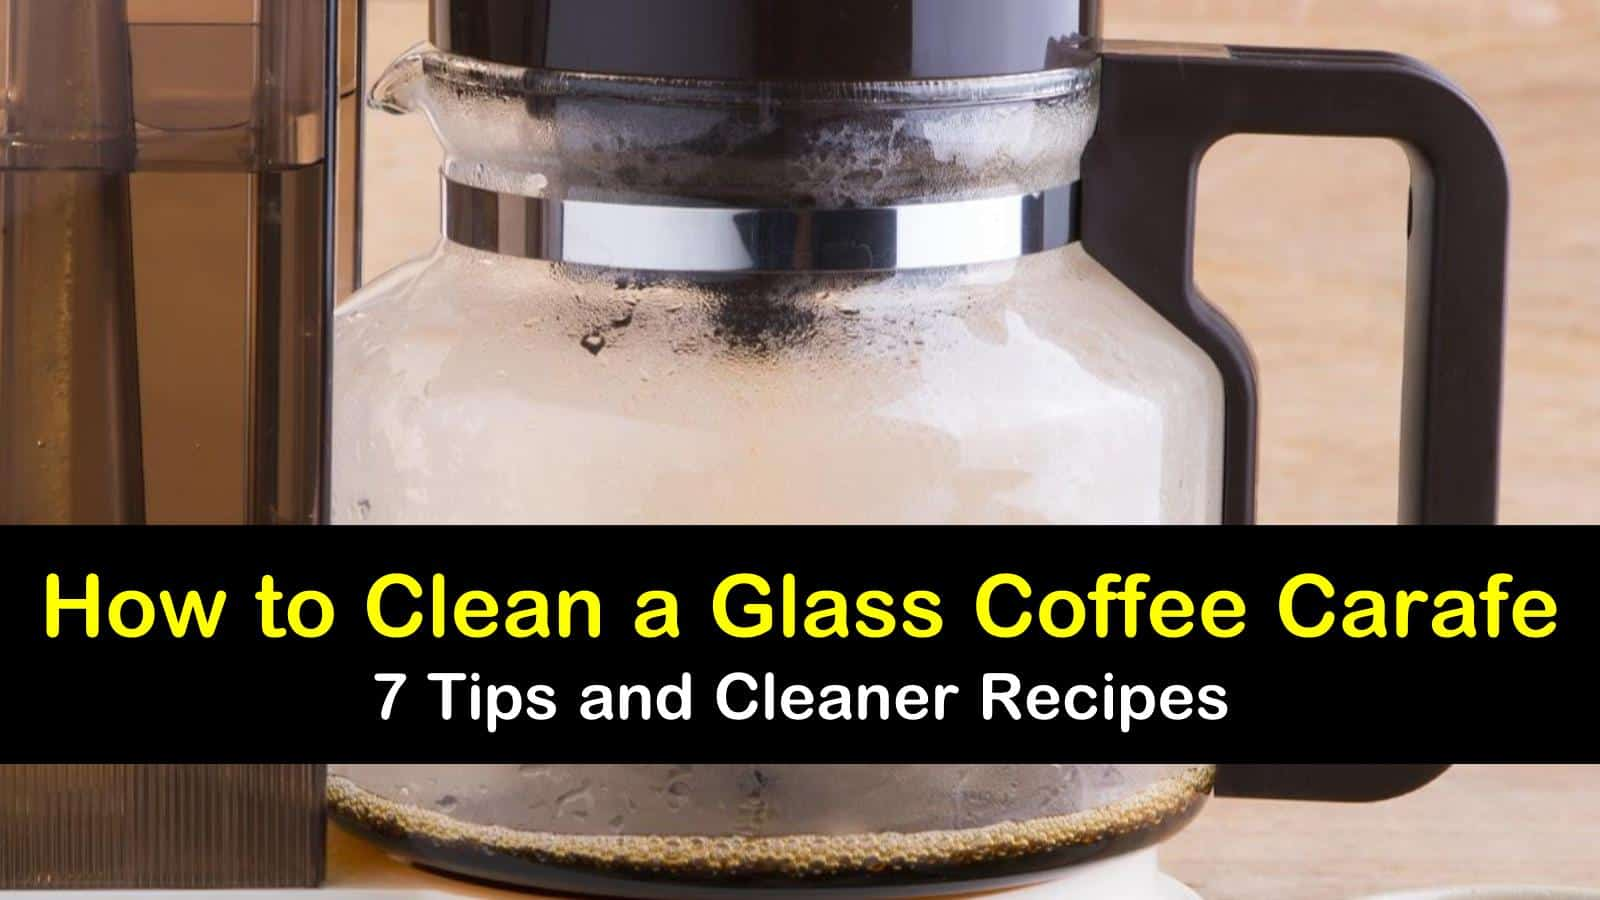 How to Clean a Glass Coffee Carafe - 7